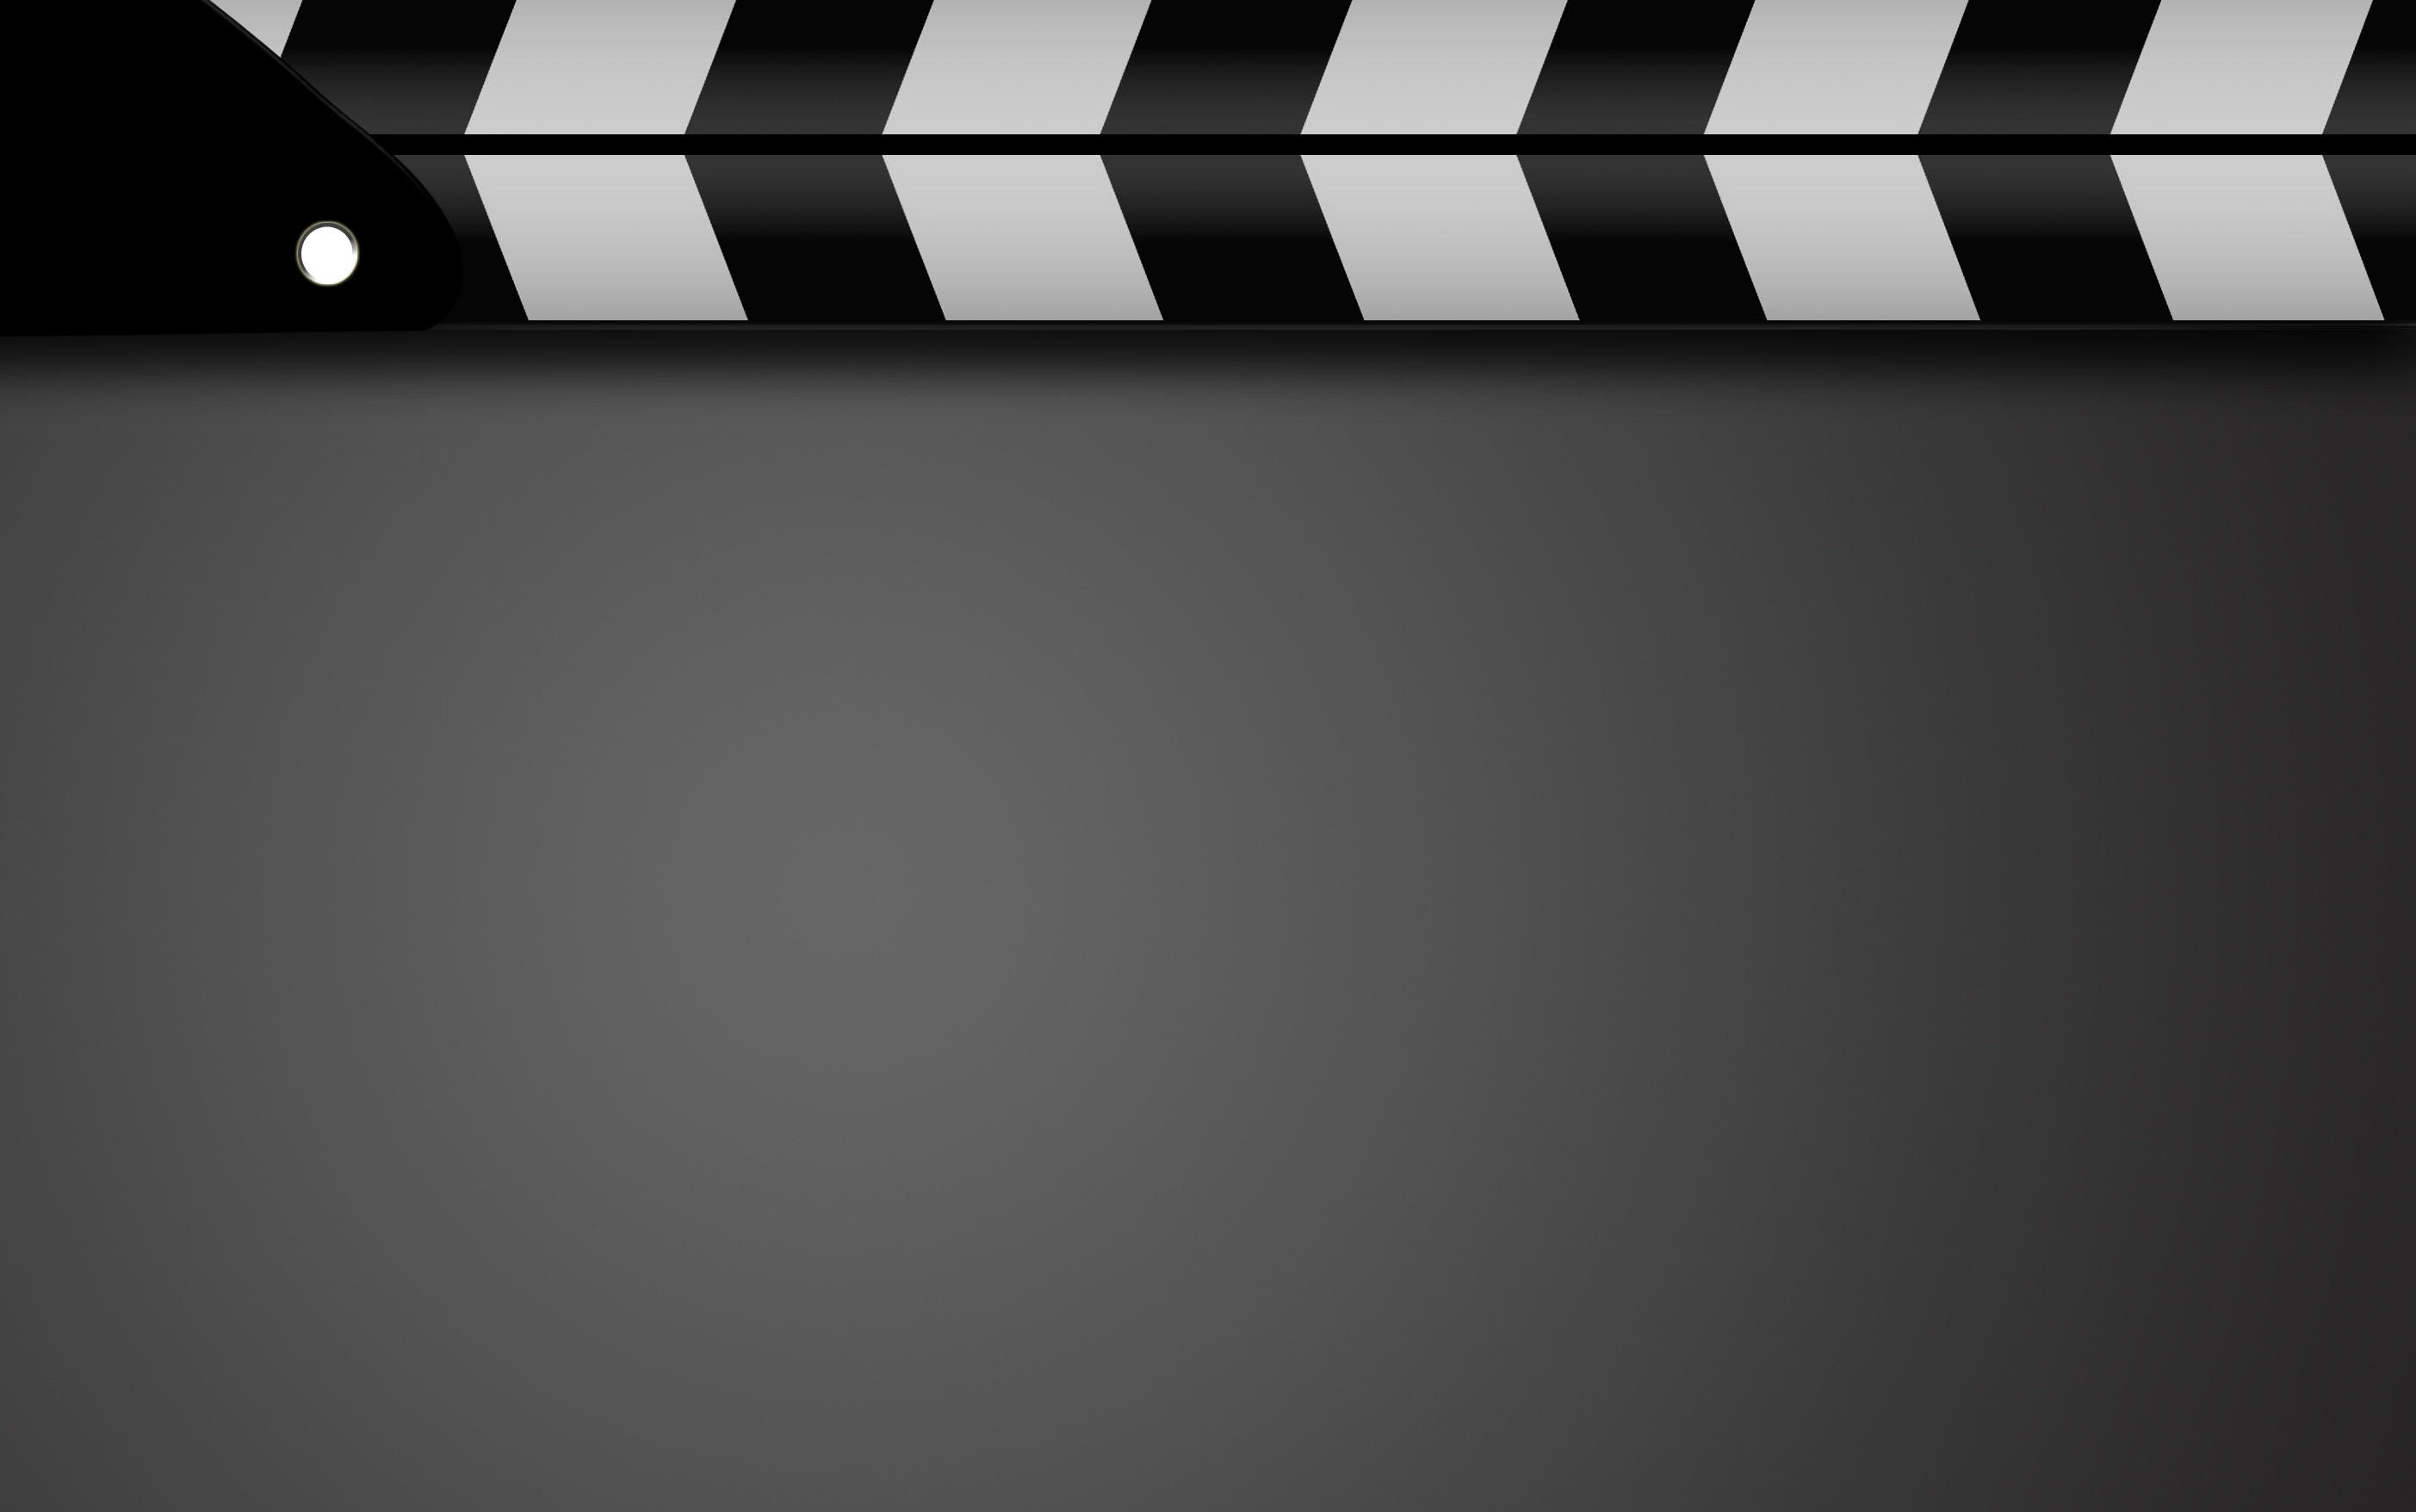 62061 download wallpaper Minimalism, Cinema, Creative, Film, Filming, Shooting, Samples, Sample, Personnel screensavers and pictures for free